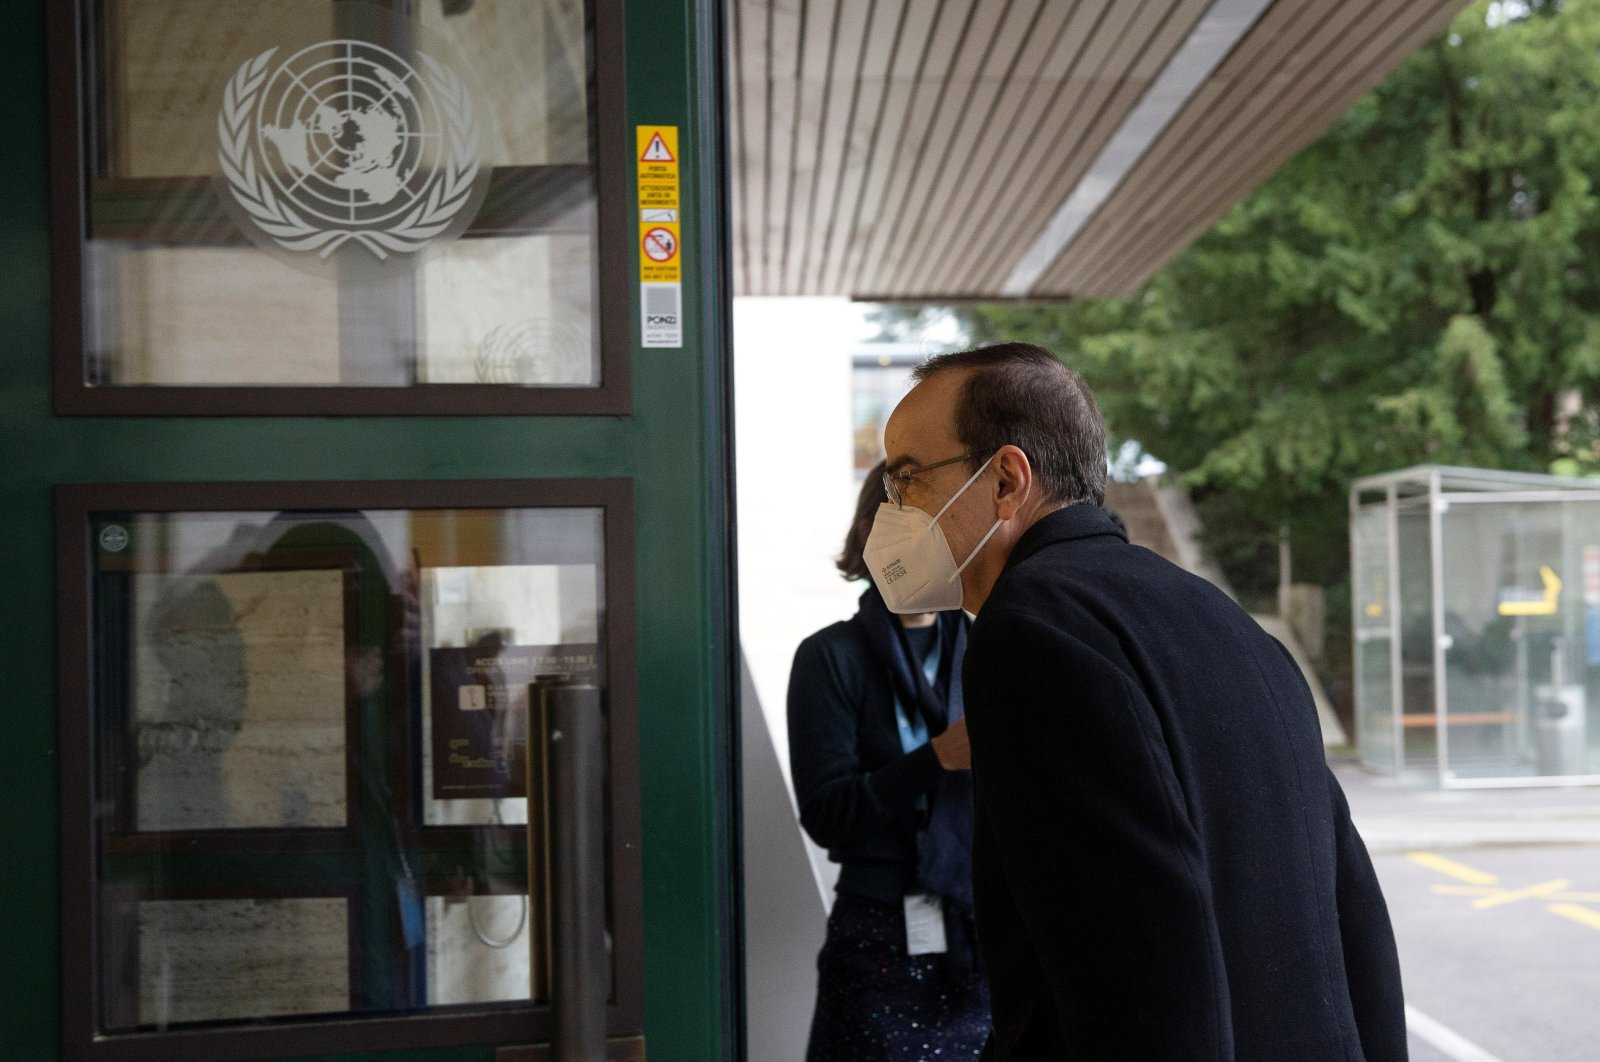 Syrian Constitutional Committee Co-Chair Hadi al-Bahra from the opposition arrives for the fourth session of the committee at the European headquarters of the United Nations in Geneva, Switzerland, Nov. 30, 2020. (Reuters Photo)